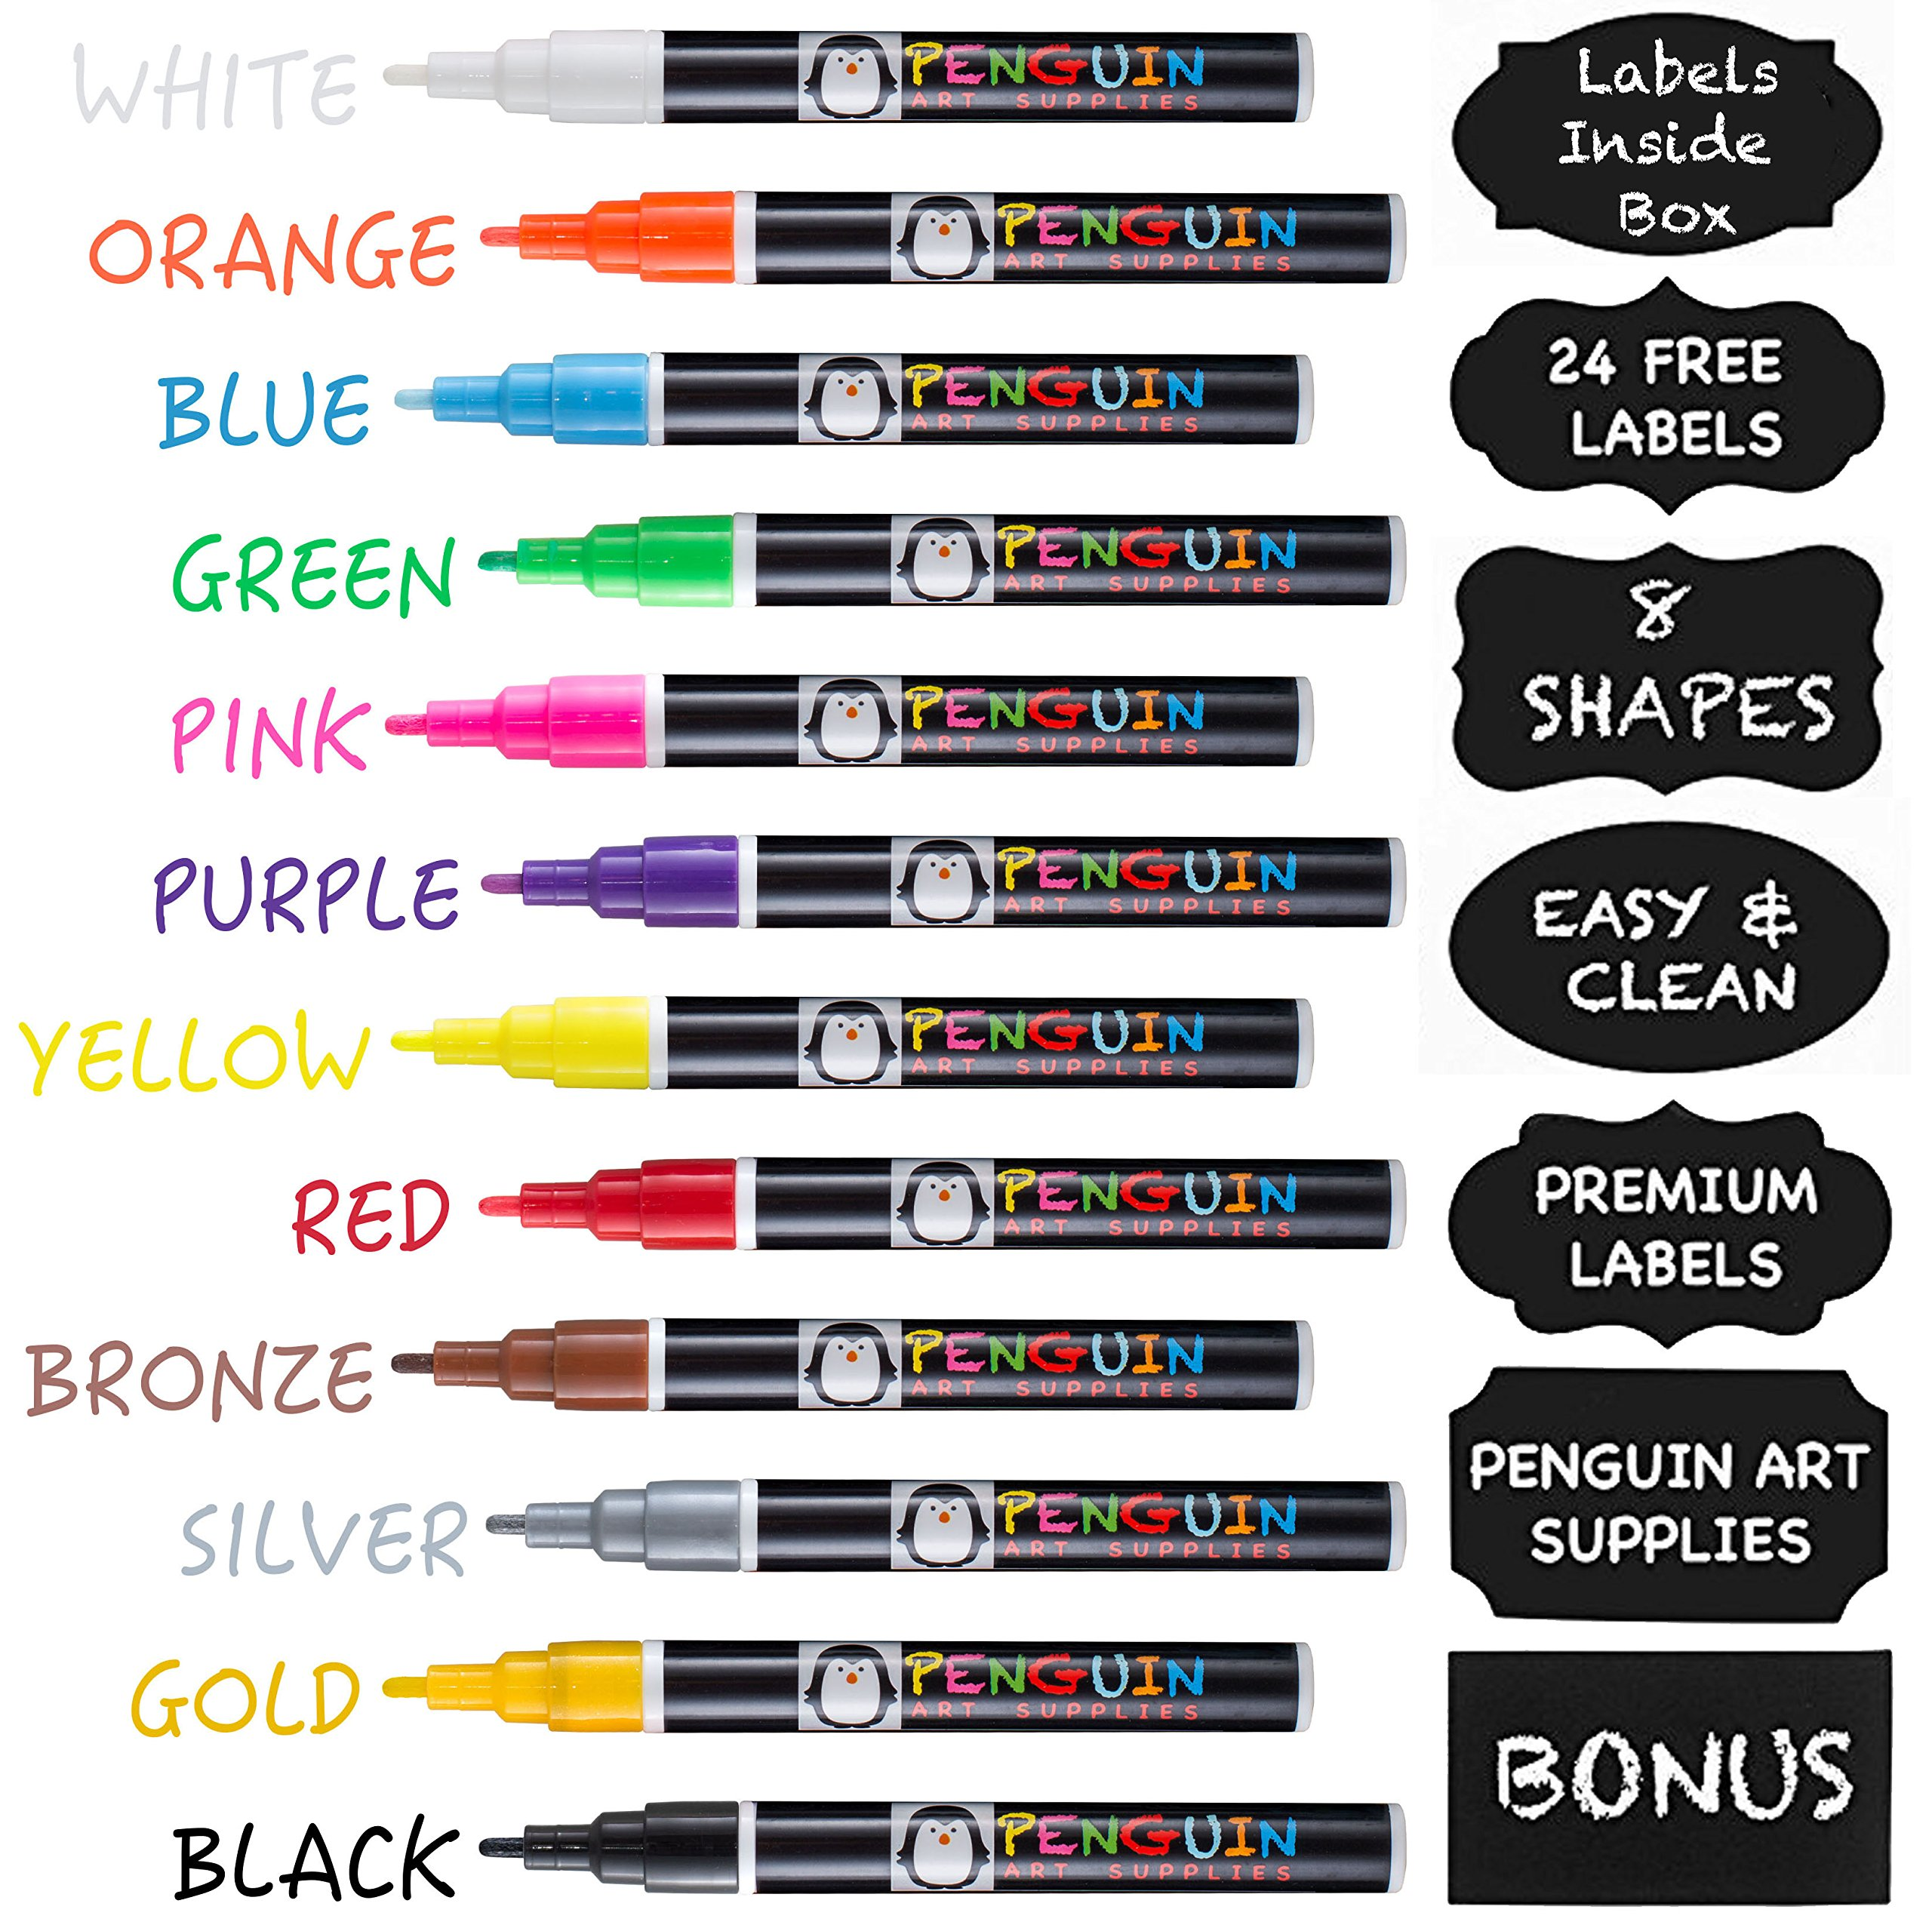 Professional Artist Quality Fine Tip Chalk Markers - Set of 12 Color Liquid Pens Dry Erase + BONUS 24 Chalkboard Stickers